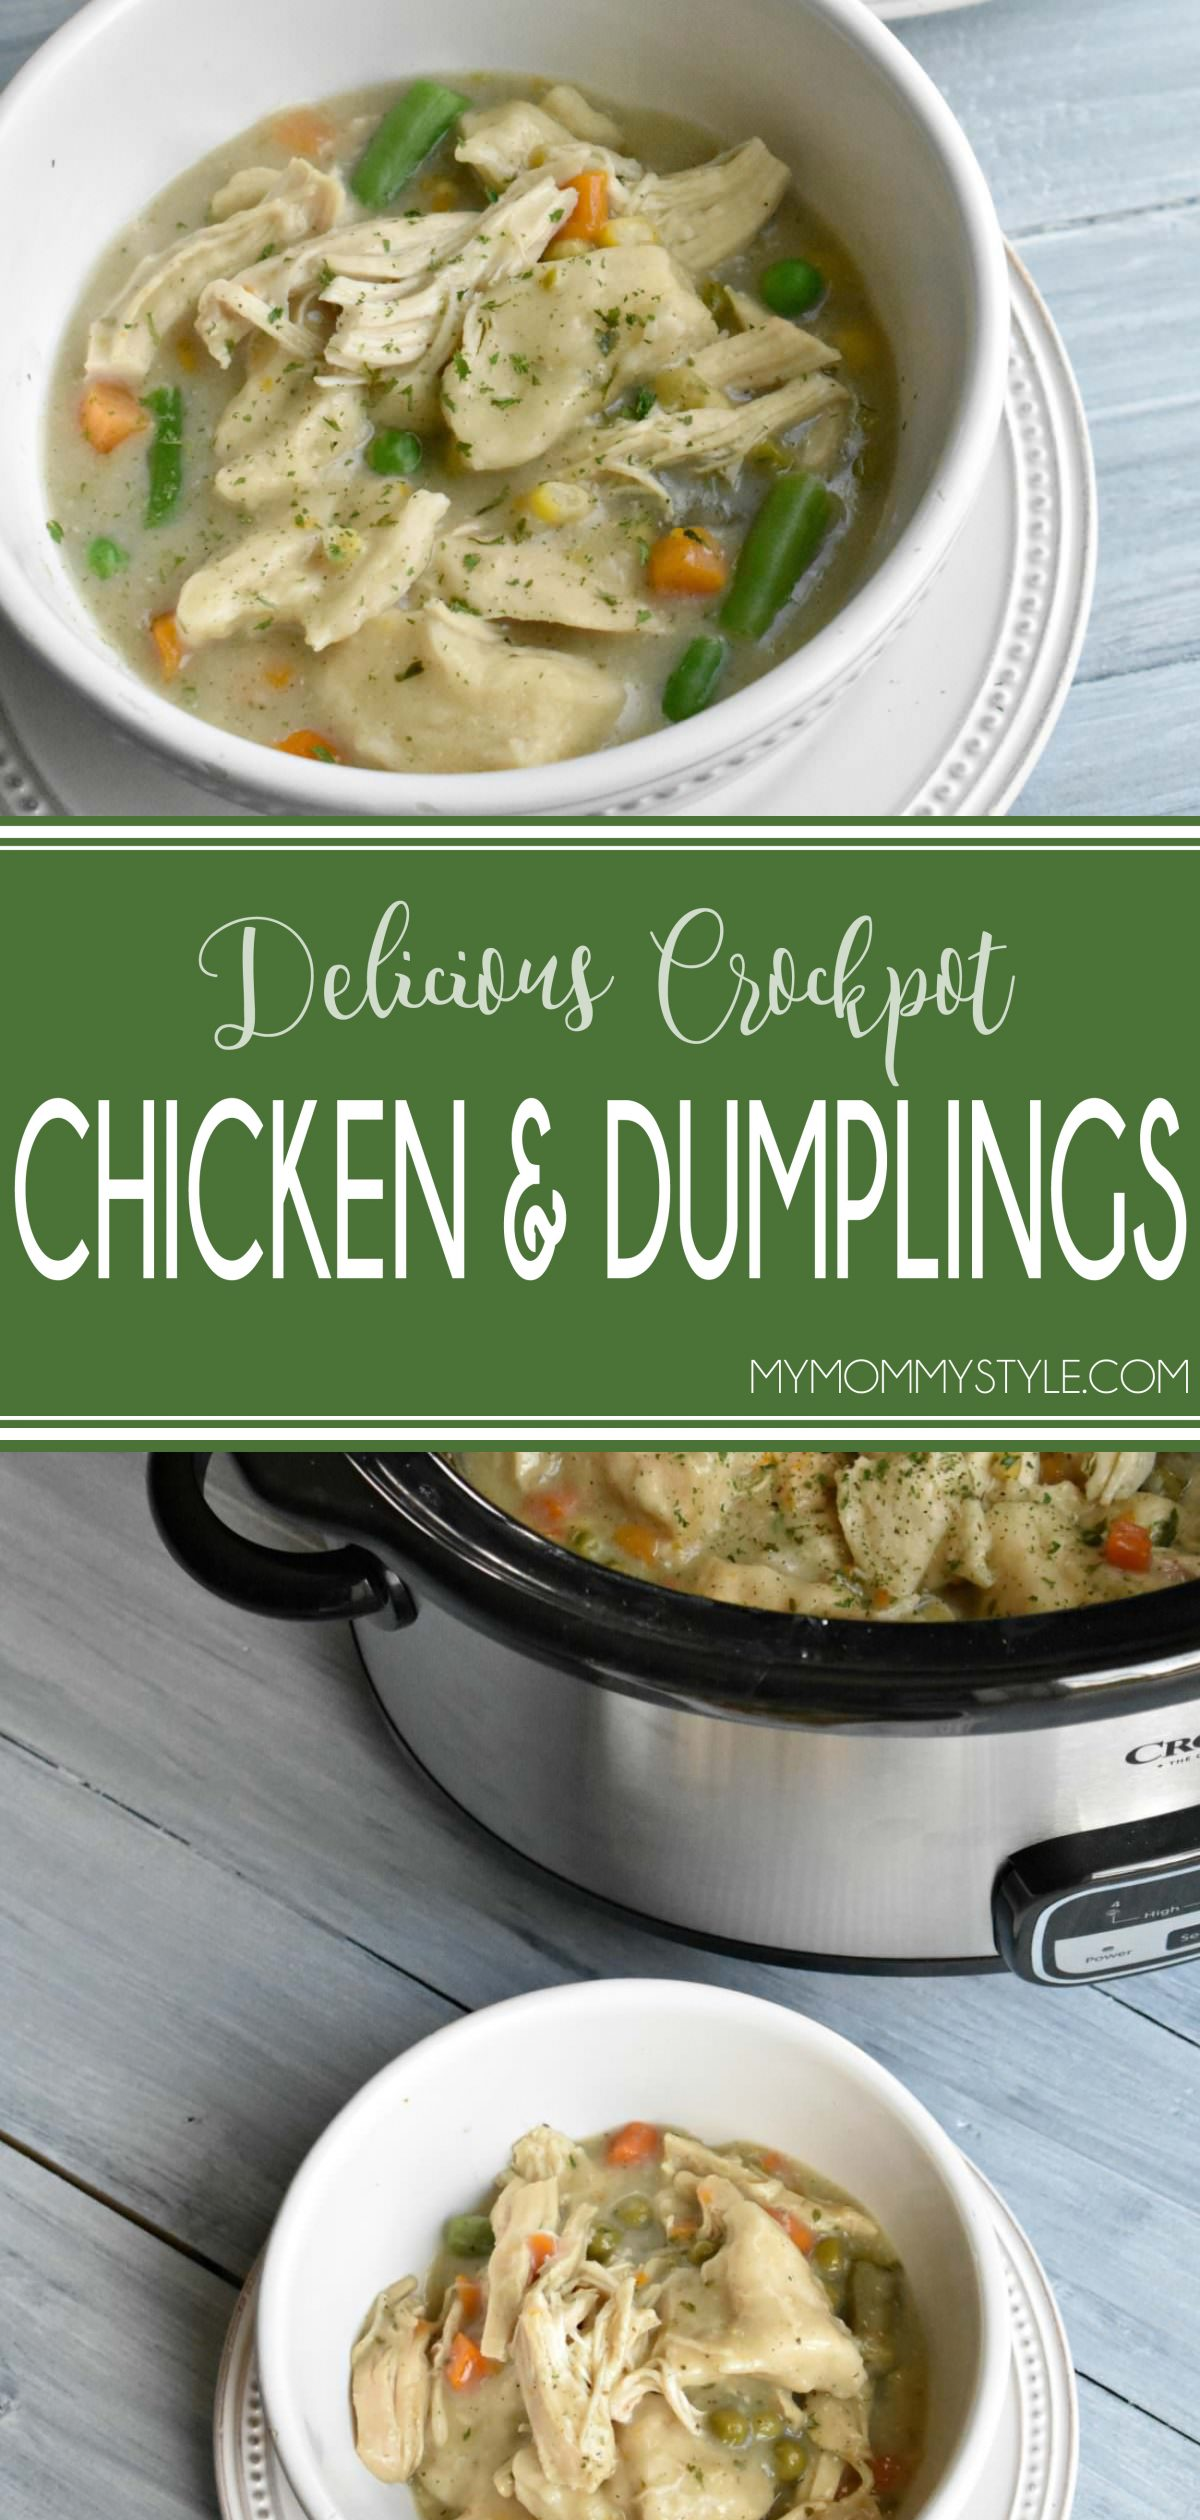 This Crockpot chicken and dumplings recipe was so easy to throw together and it made my house smell so good as it cooked all day. This is one of those slow cooker recipes where you just throw everything in there and let it cook all day. There is some prep to do at the end with shredding the chicken and adding the dumplings, but it adds 5 minutes to the total time. via @mymommystyle